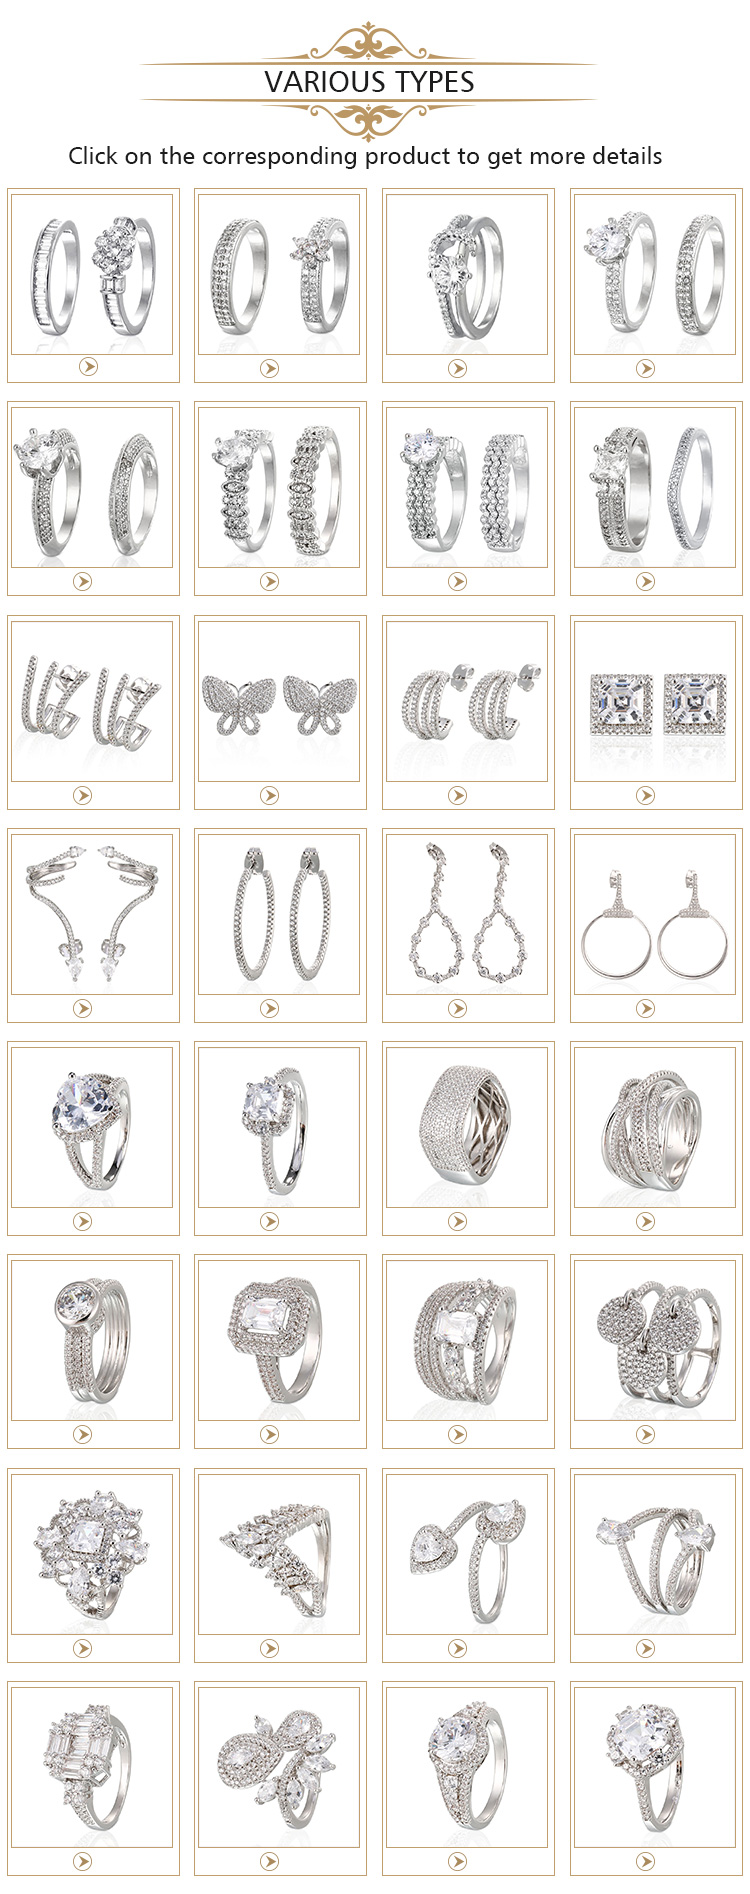 Cheap Wholesale Indian Fashion White Gold Silver Diamond Stud Long Earrings For Girls